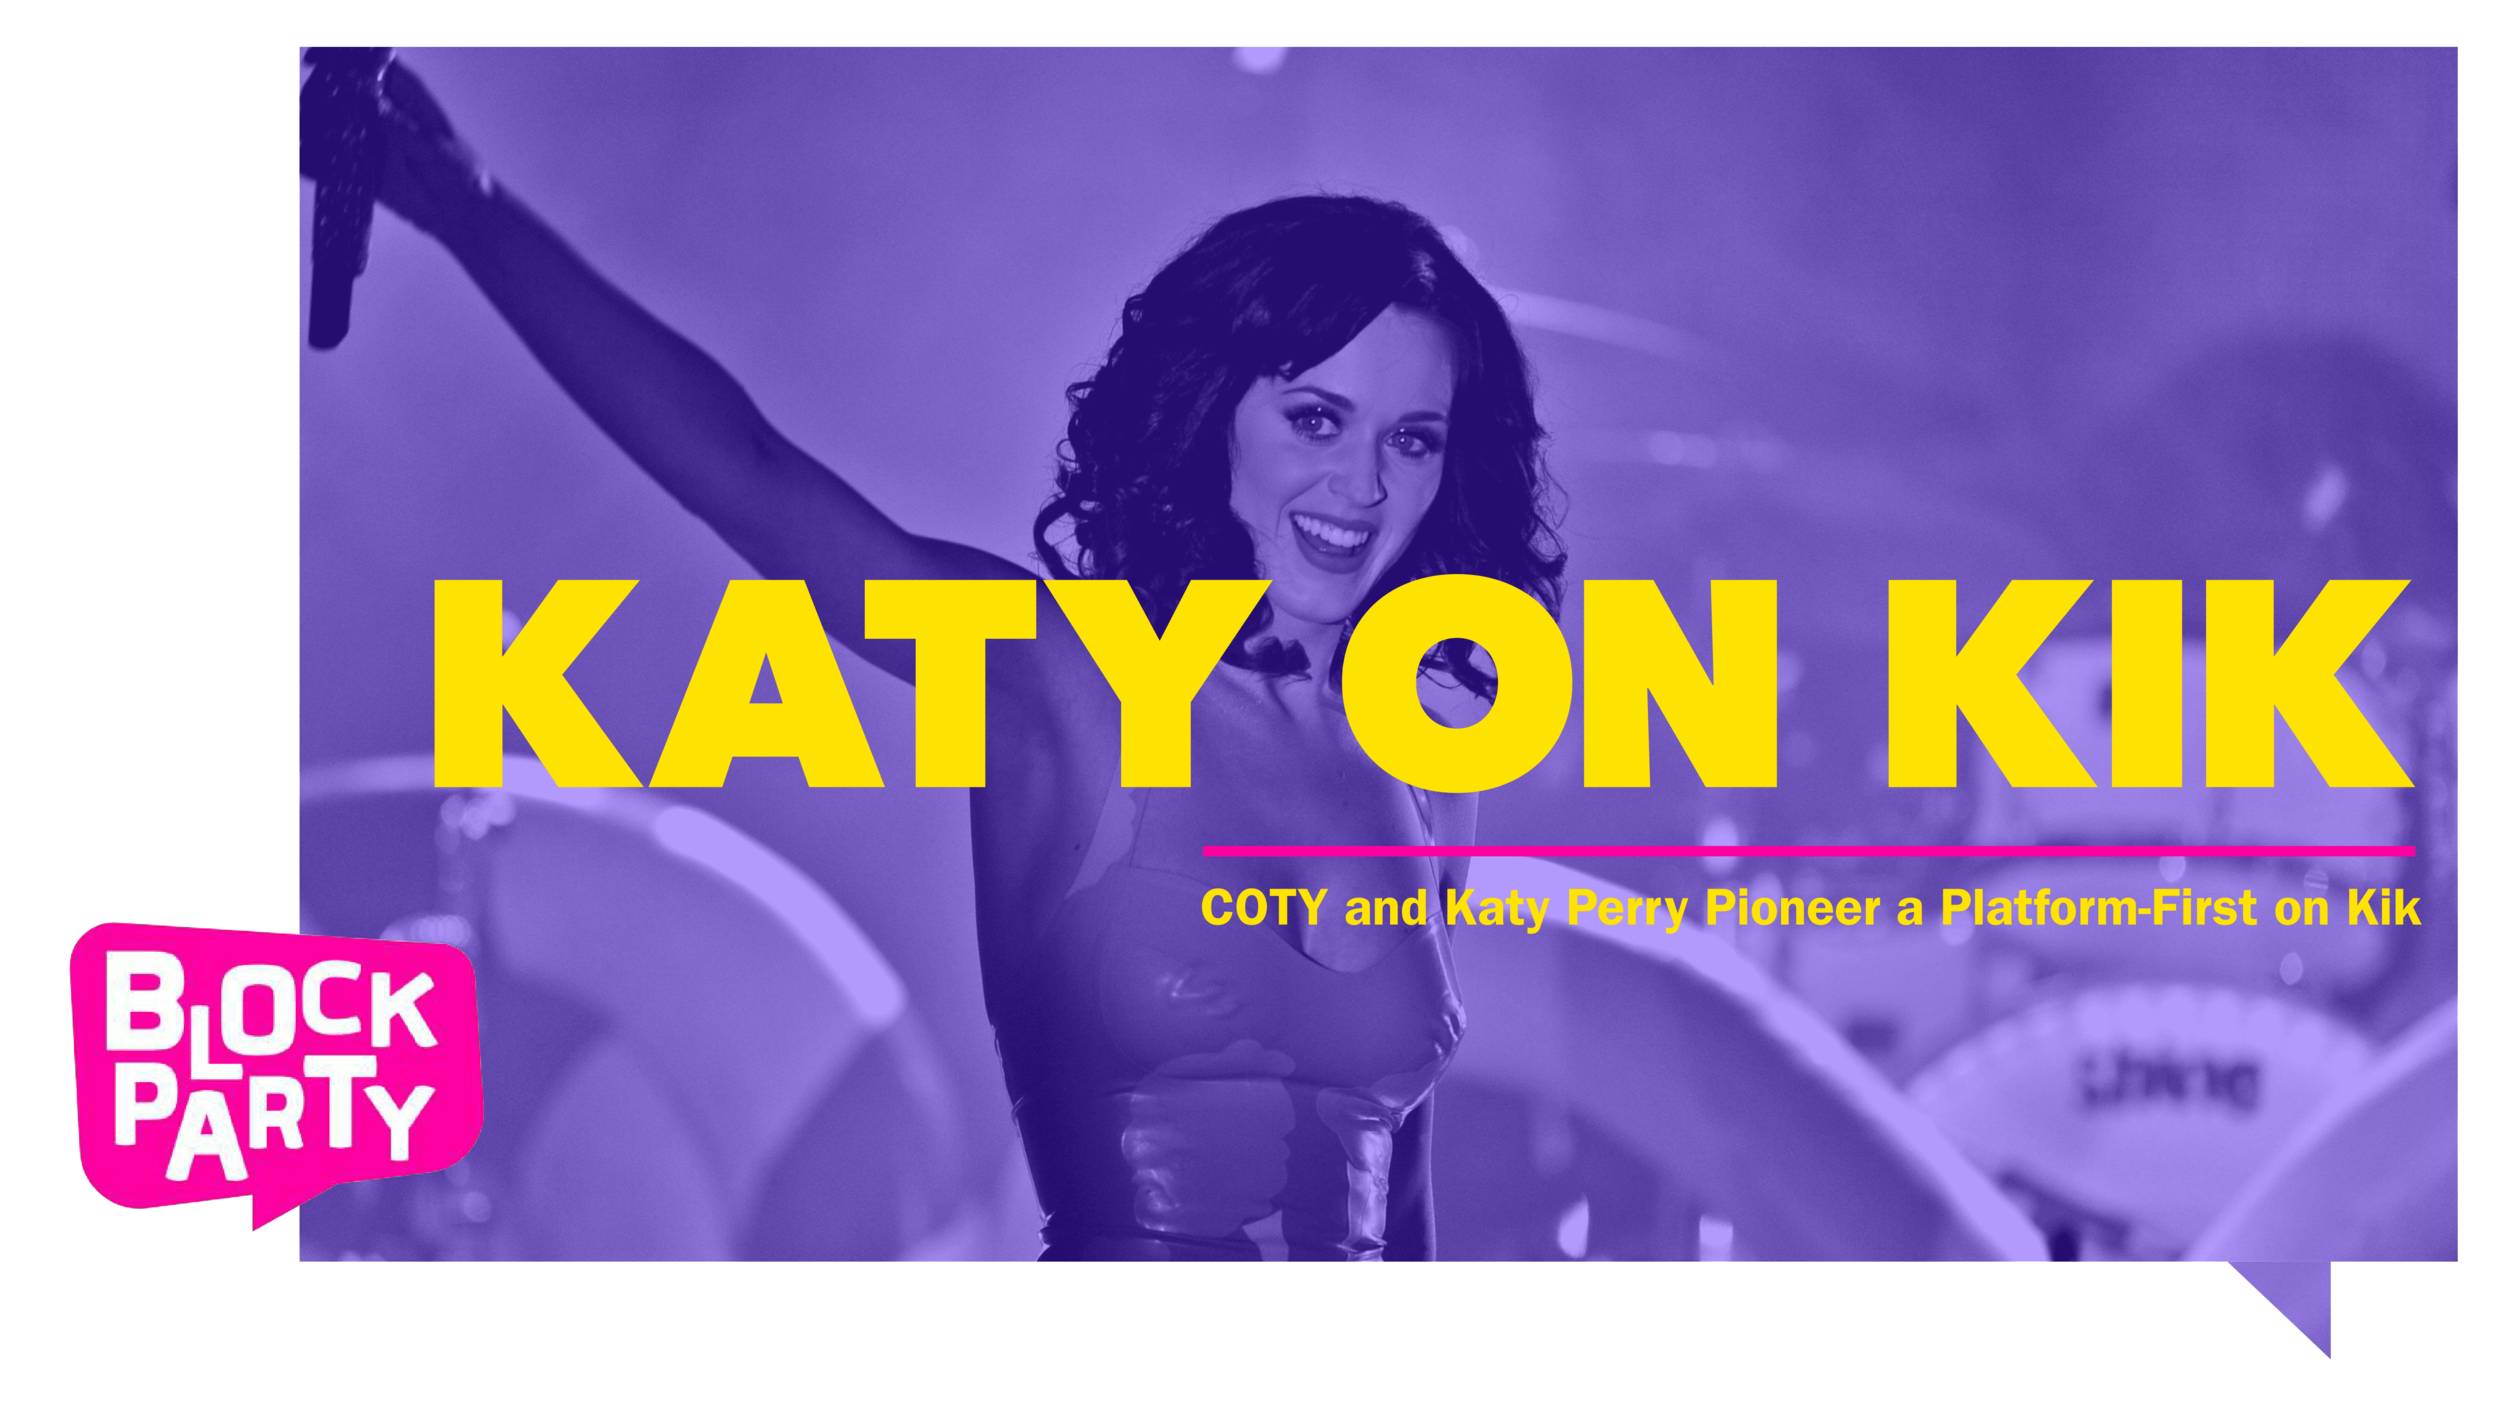 BP_Katy Perry_COTY_Case Study (1)-01.png